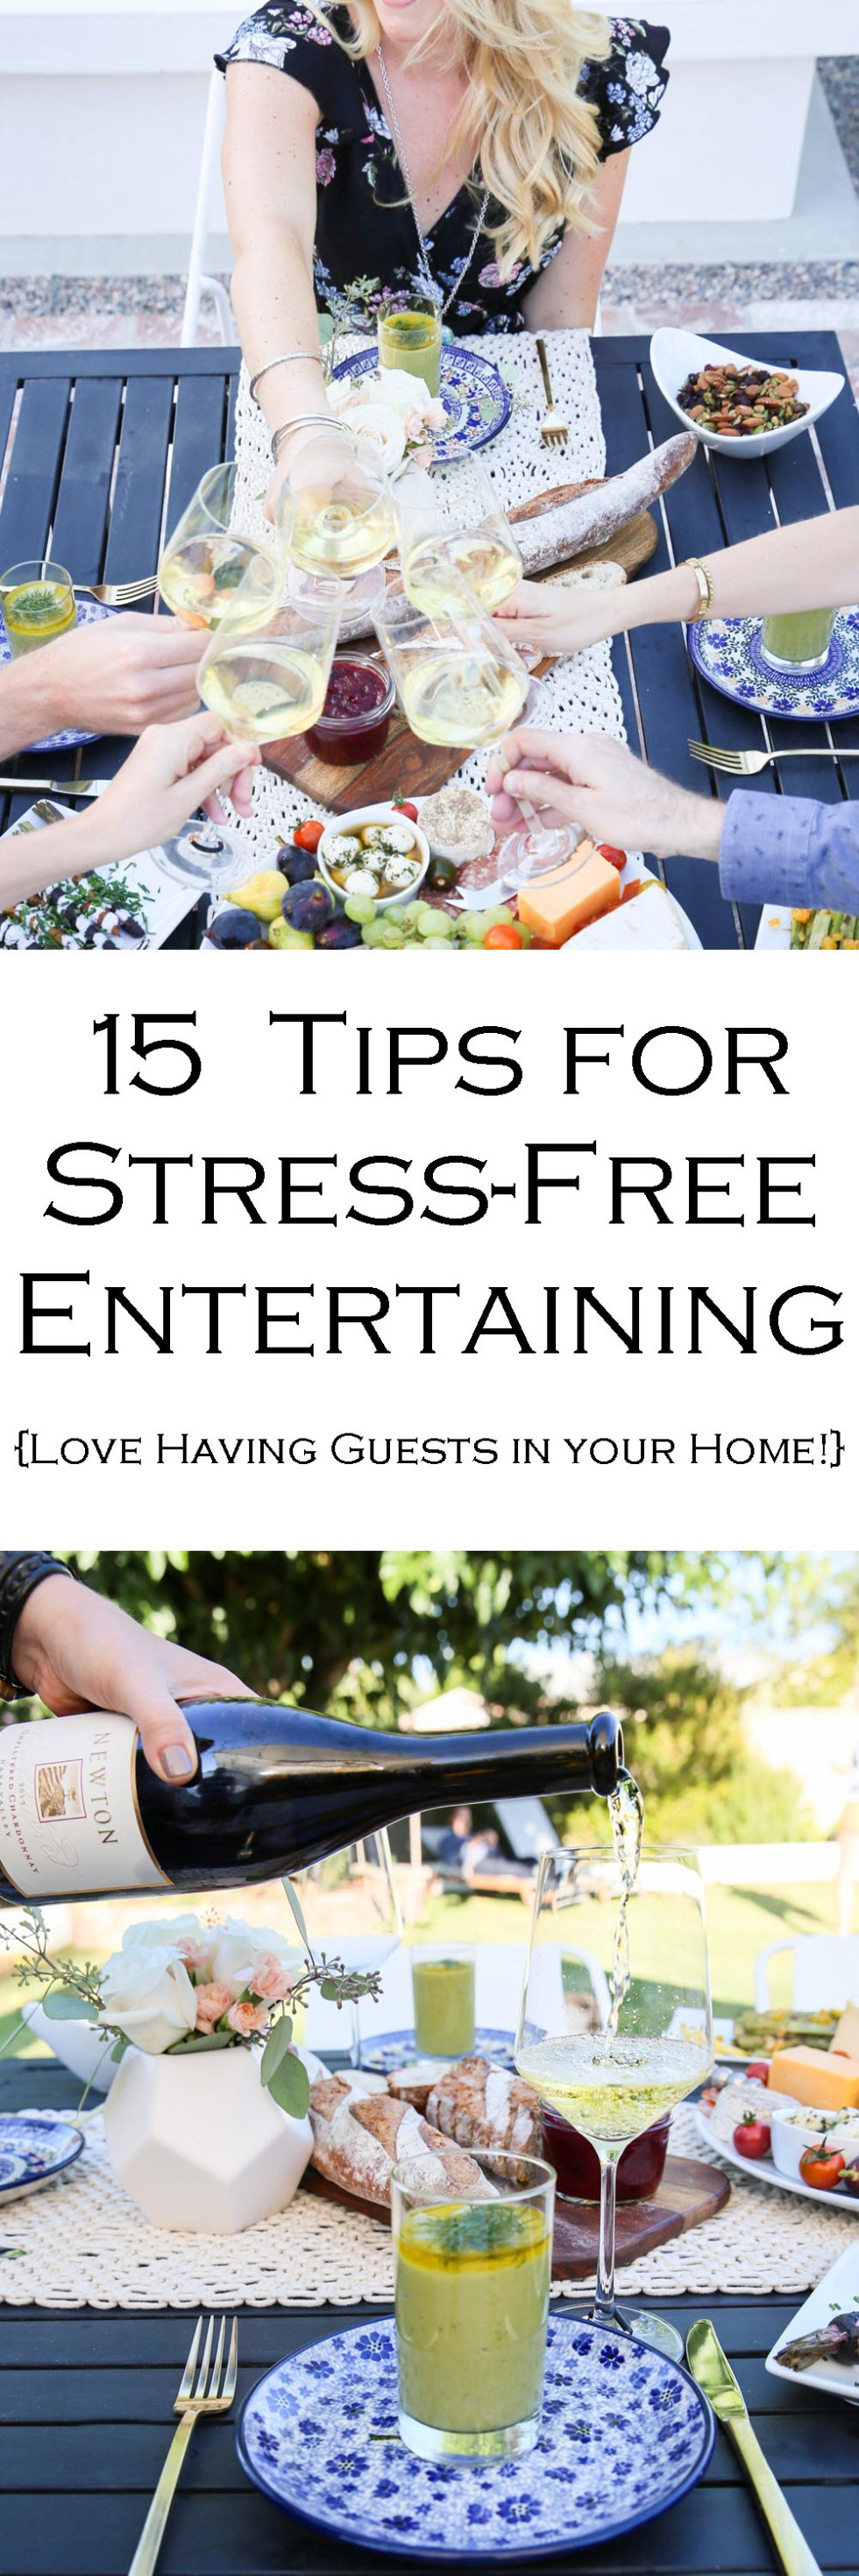 15 Tips for Stress-Free, Easy Entertaining Tips   Dinner Party Guests in Your Home.